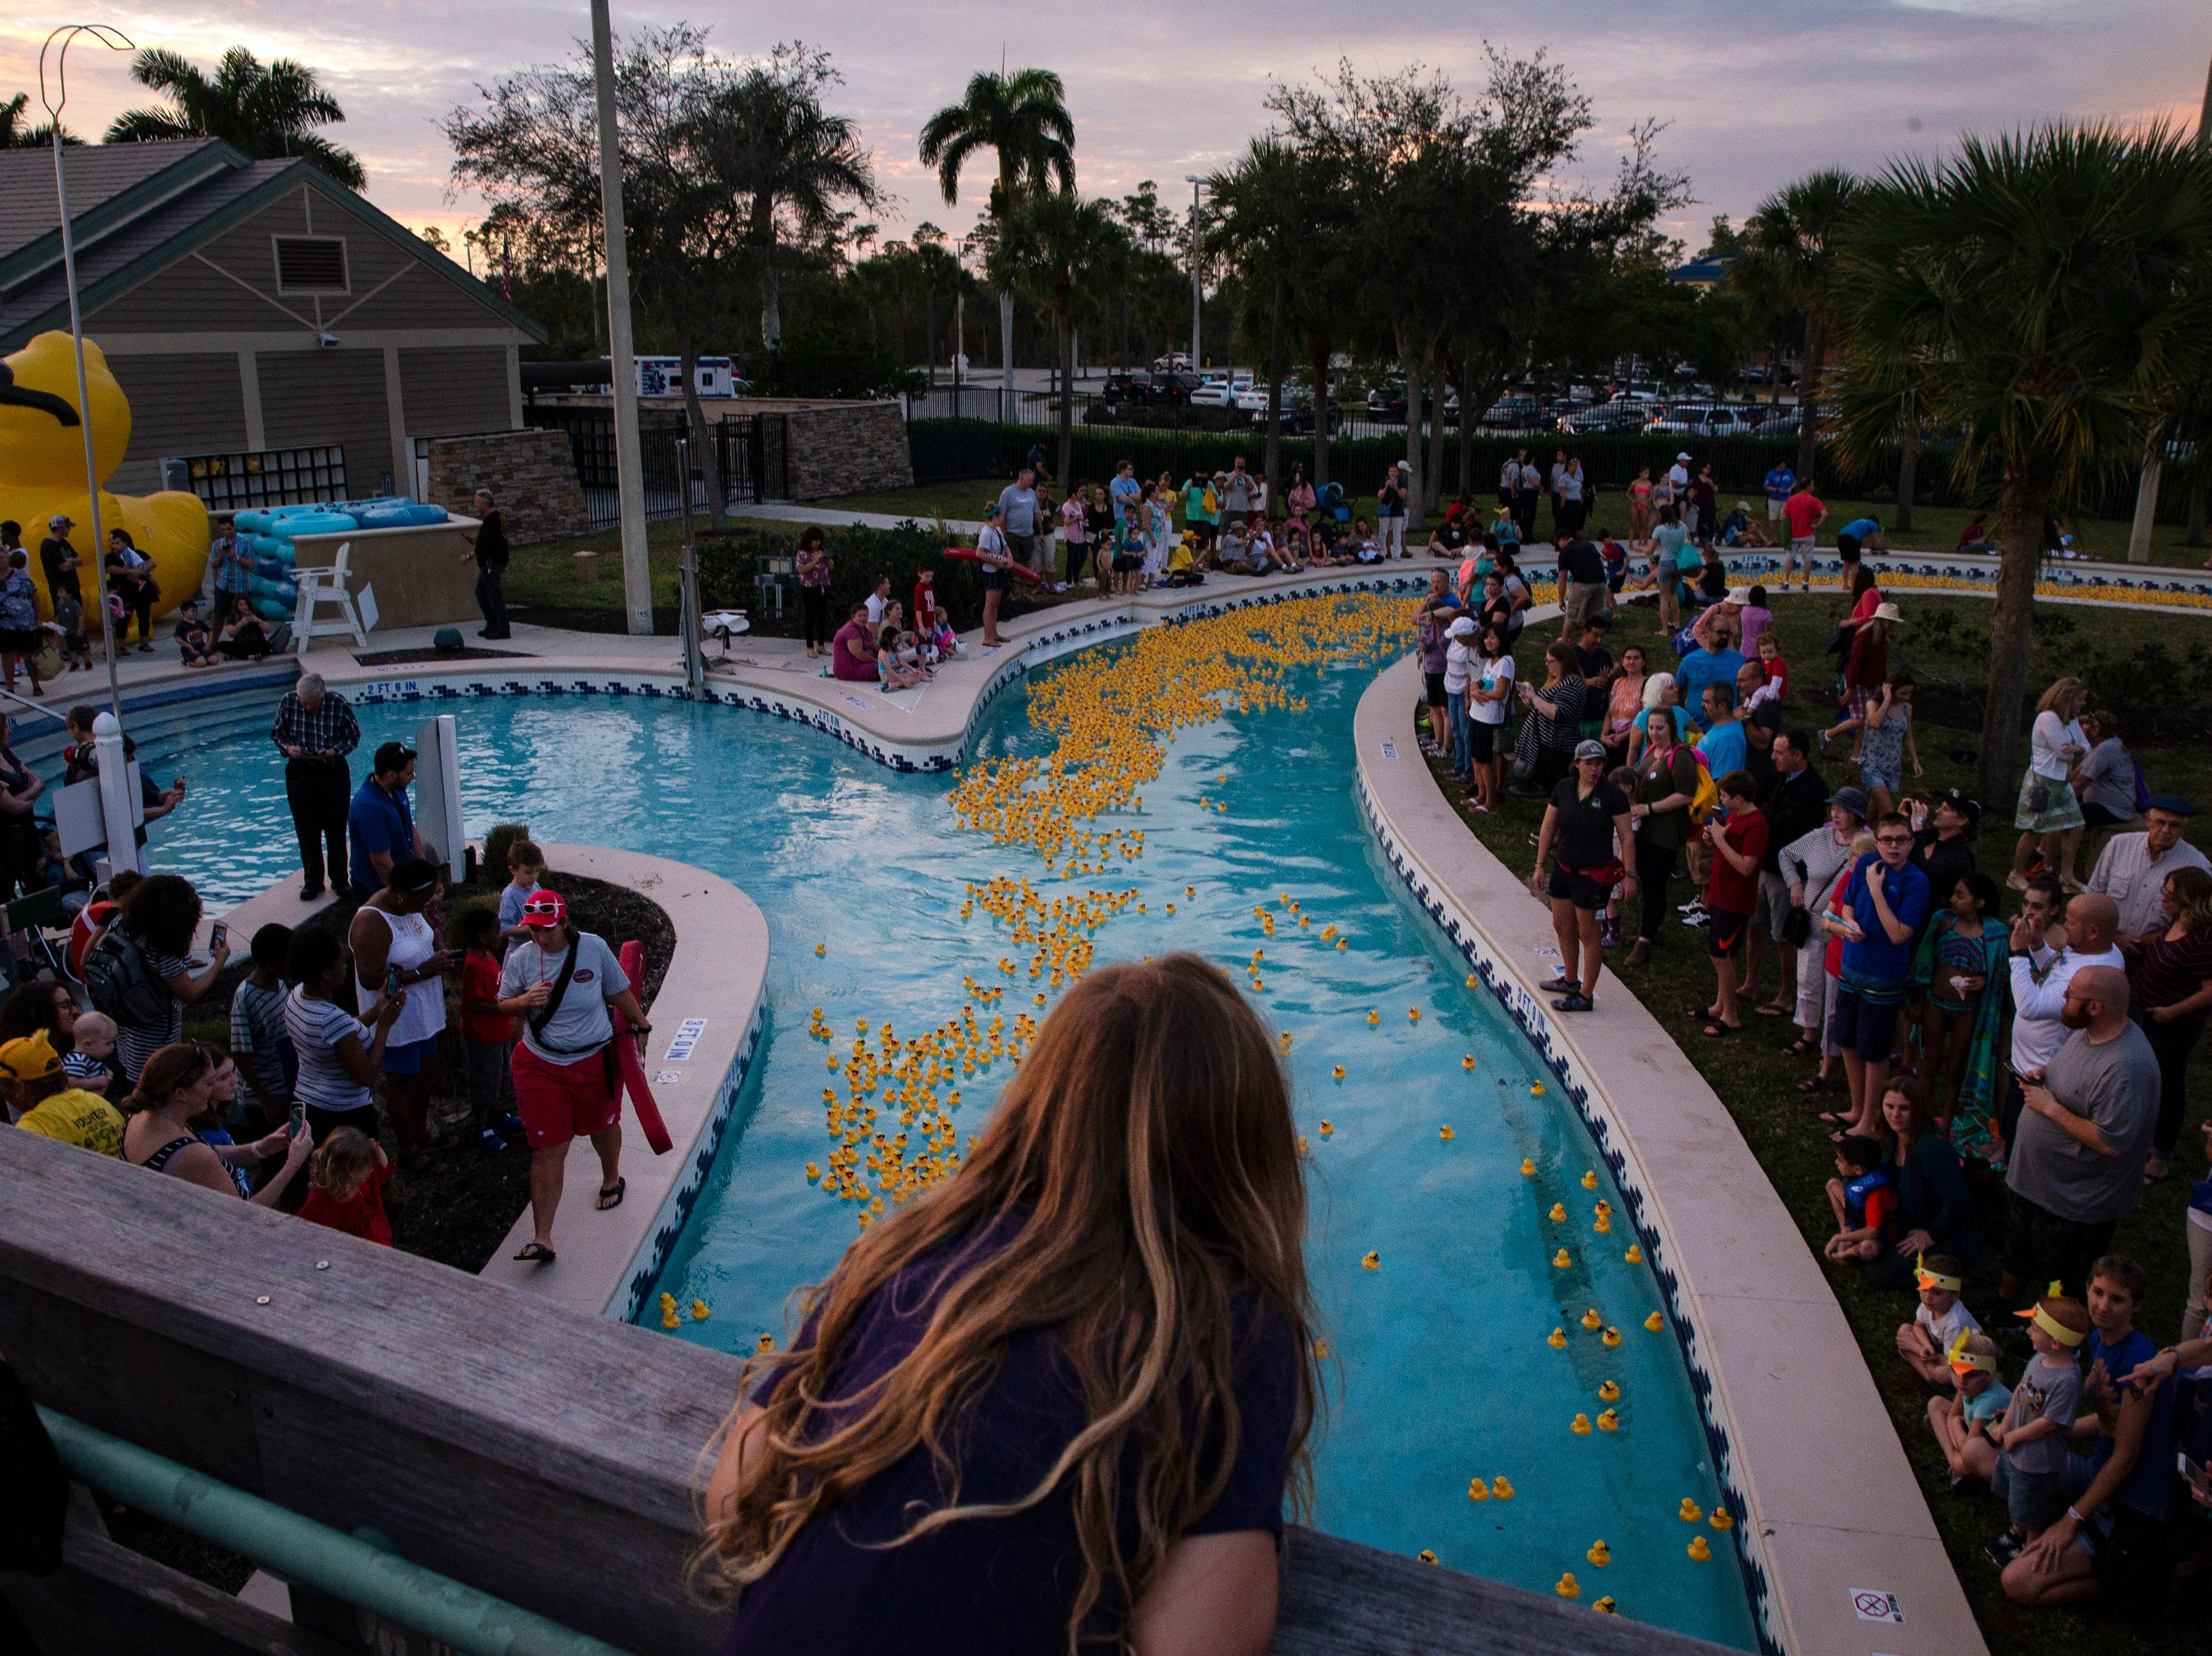 Community members look on as rubber ducks make their way around the Lazy River feature at the Sun-N-Fun Lagoon during the Great Naples Duck Race on Saturday in North Naples.